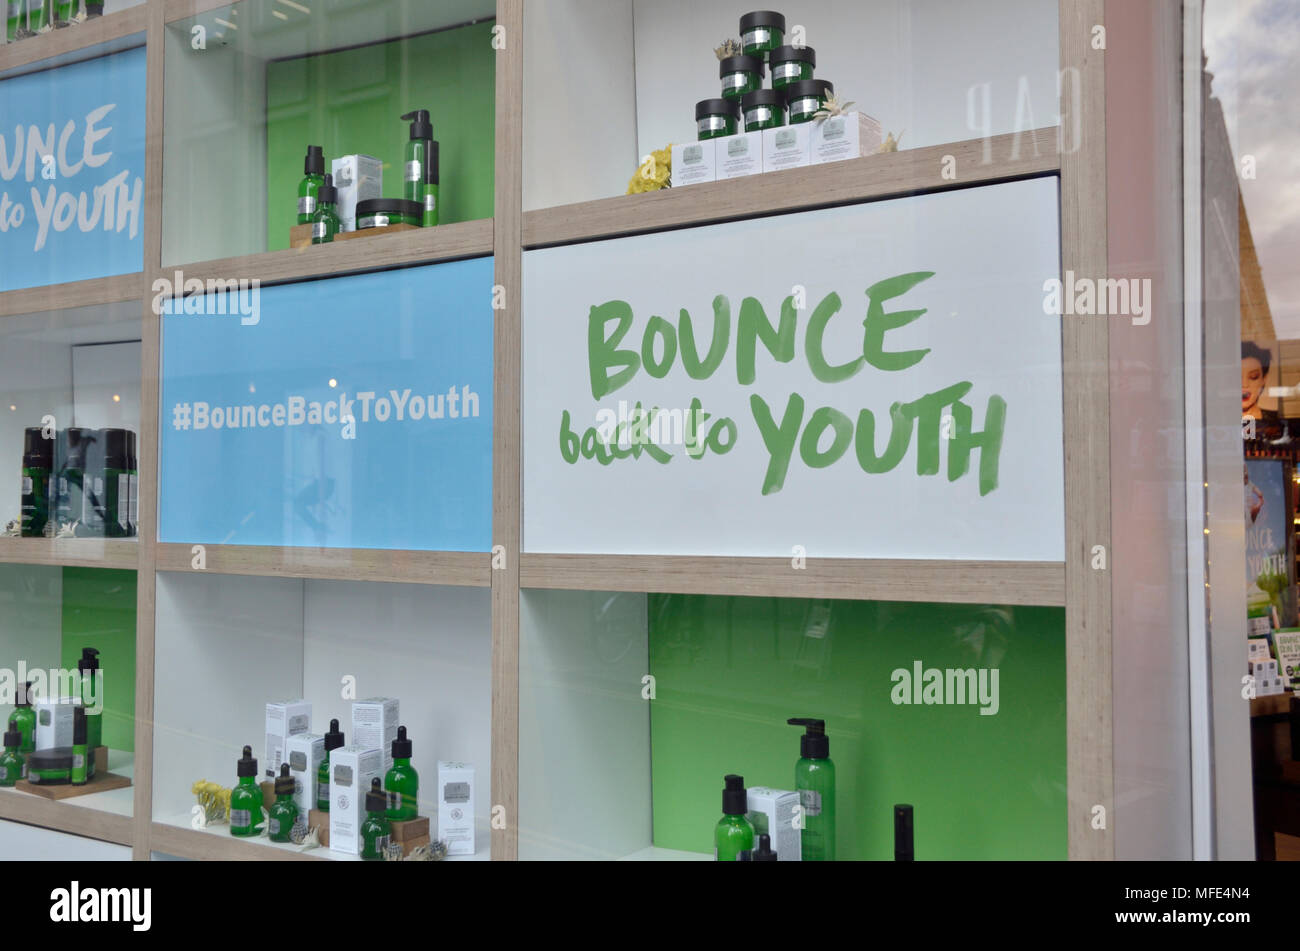 'Bounce back to Youth' sign and cosmetics in a shop window - Stock Image